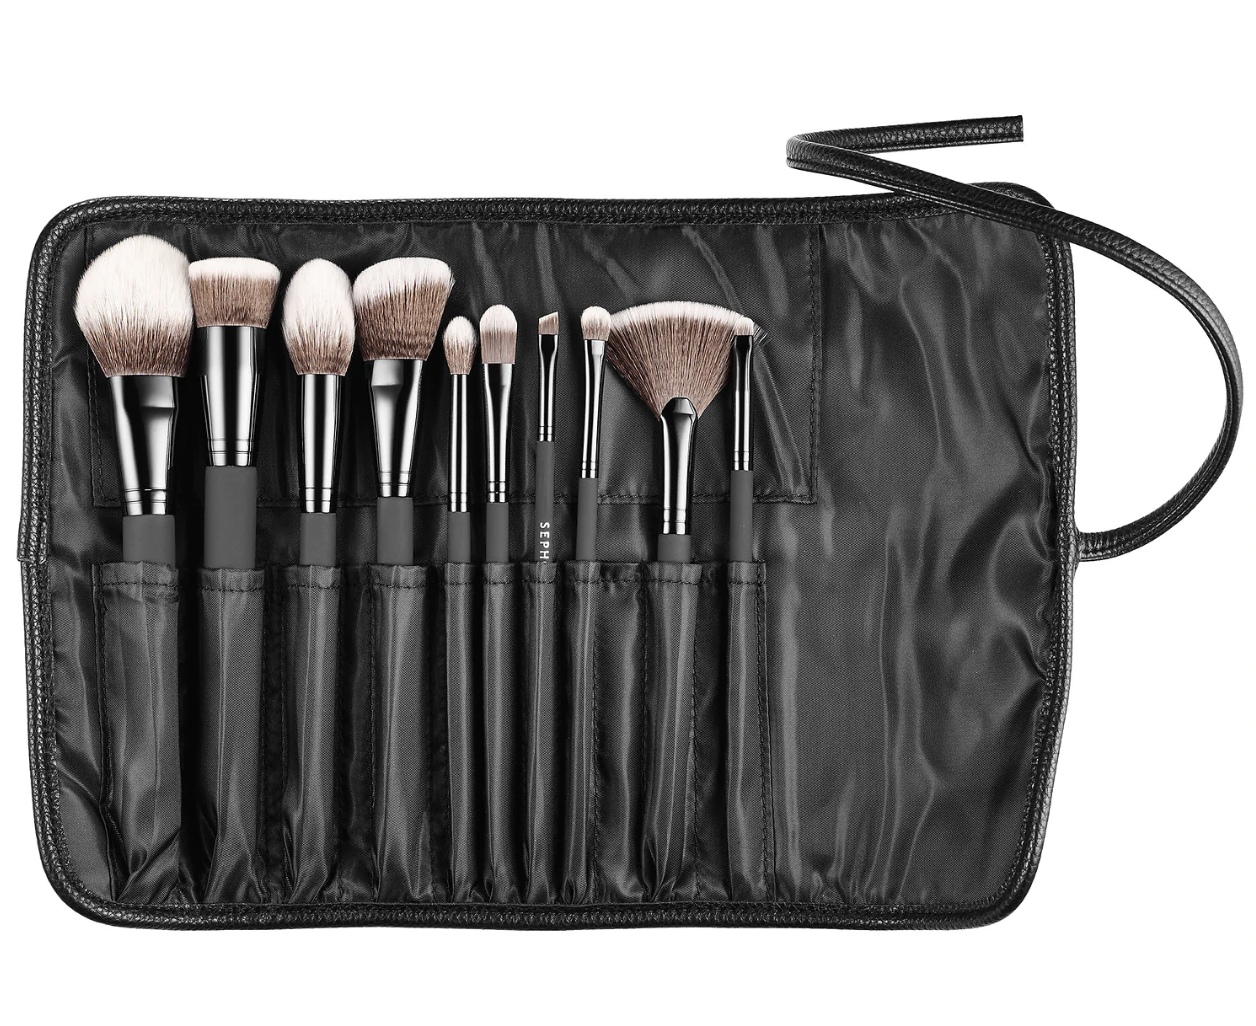 Four fluffy brushes, five smaller brushes, and one fanned brush tucked into individual pockets in the carrying case